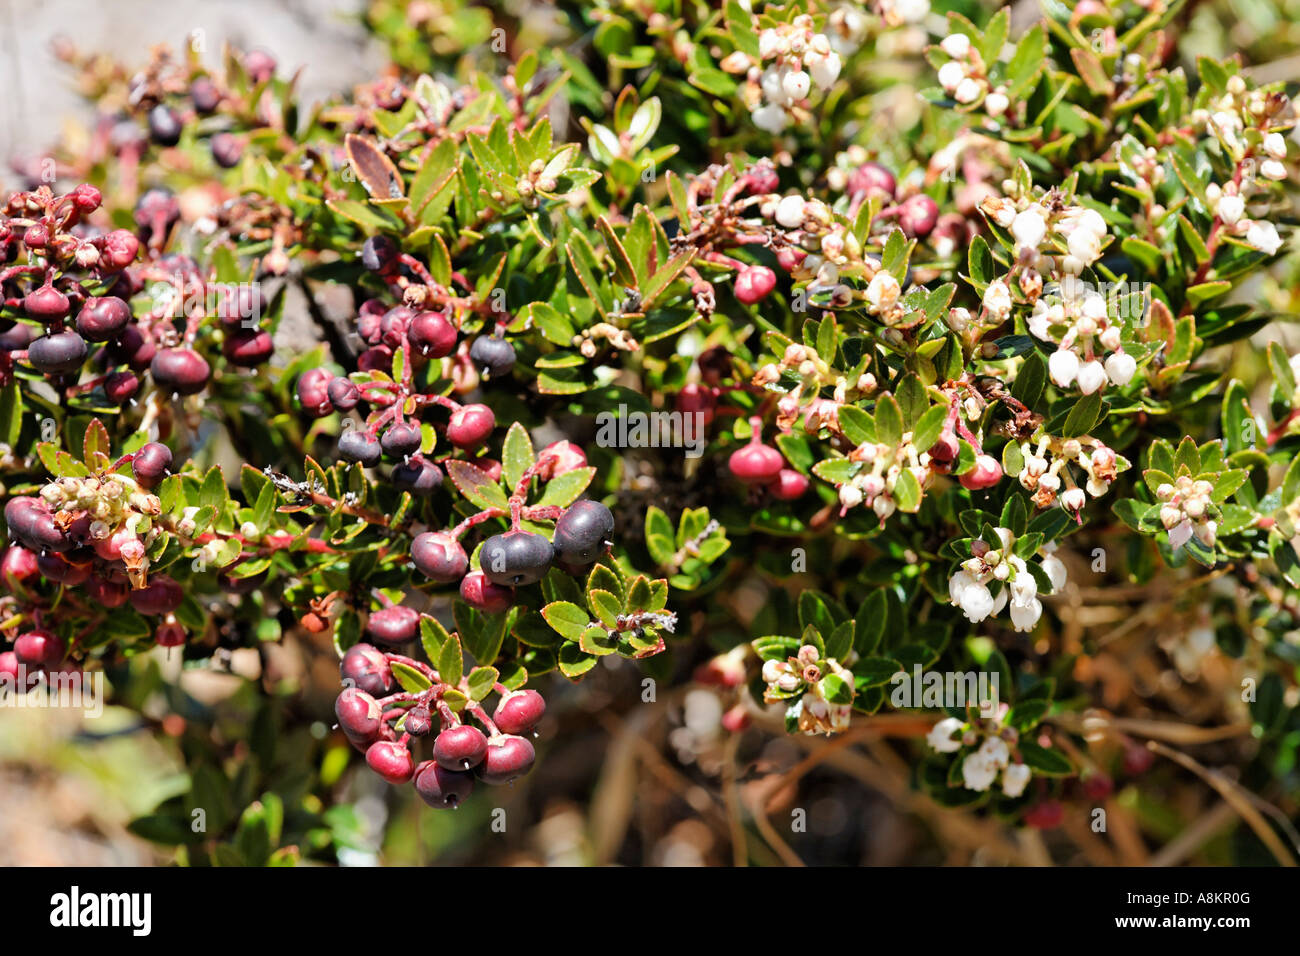 Shrub with berries, vegetation in Irazu volcano National Park, Costa Rica - Stock Image